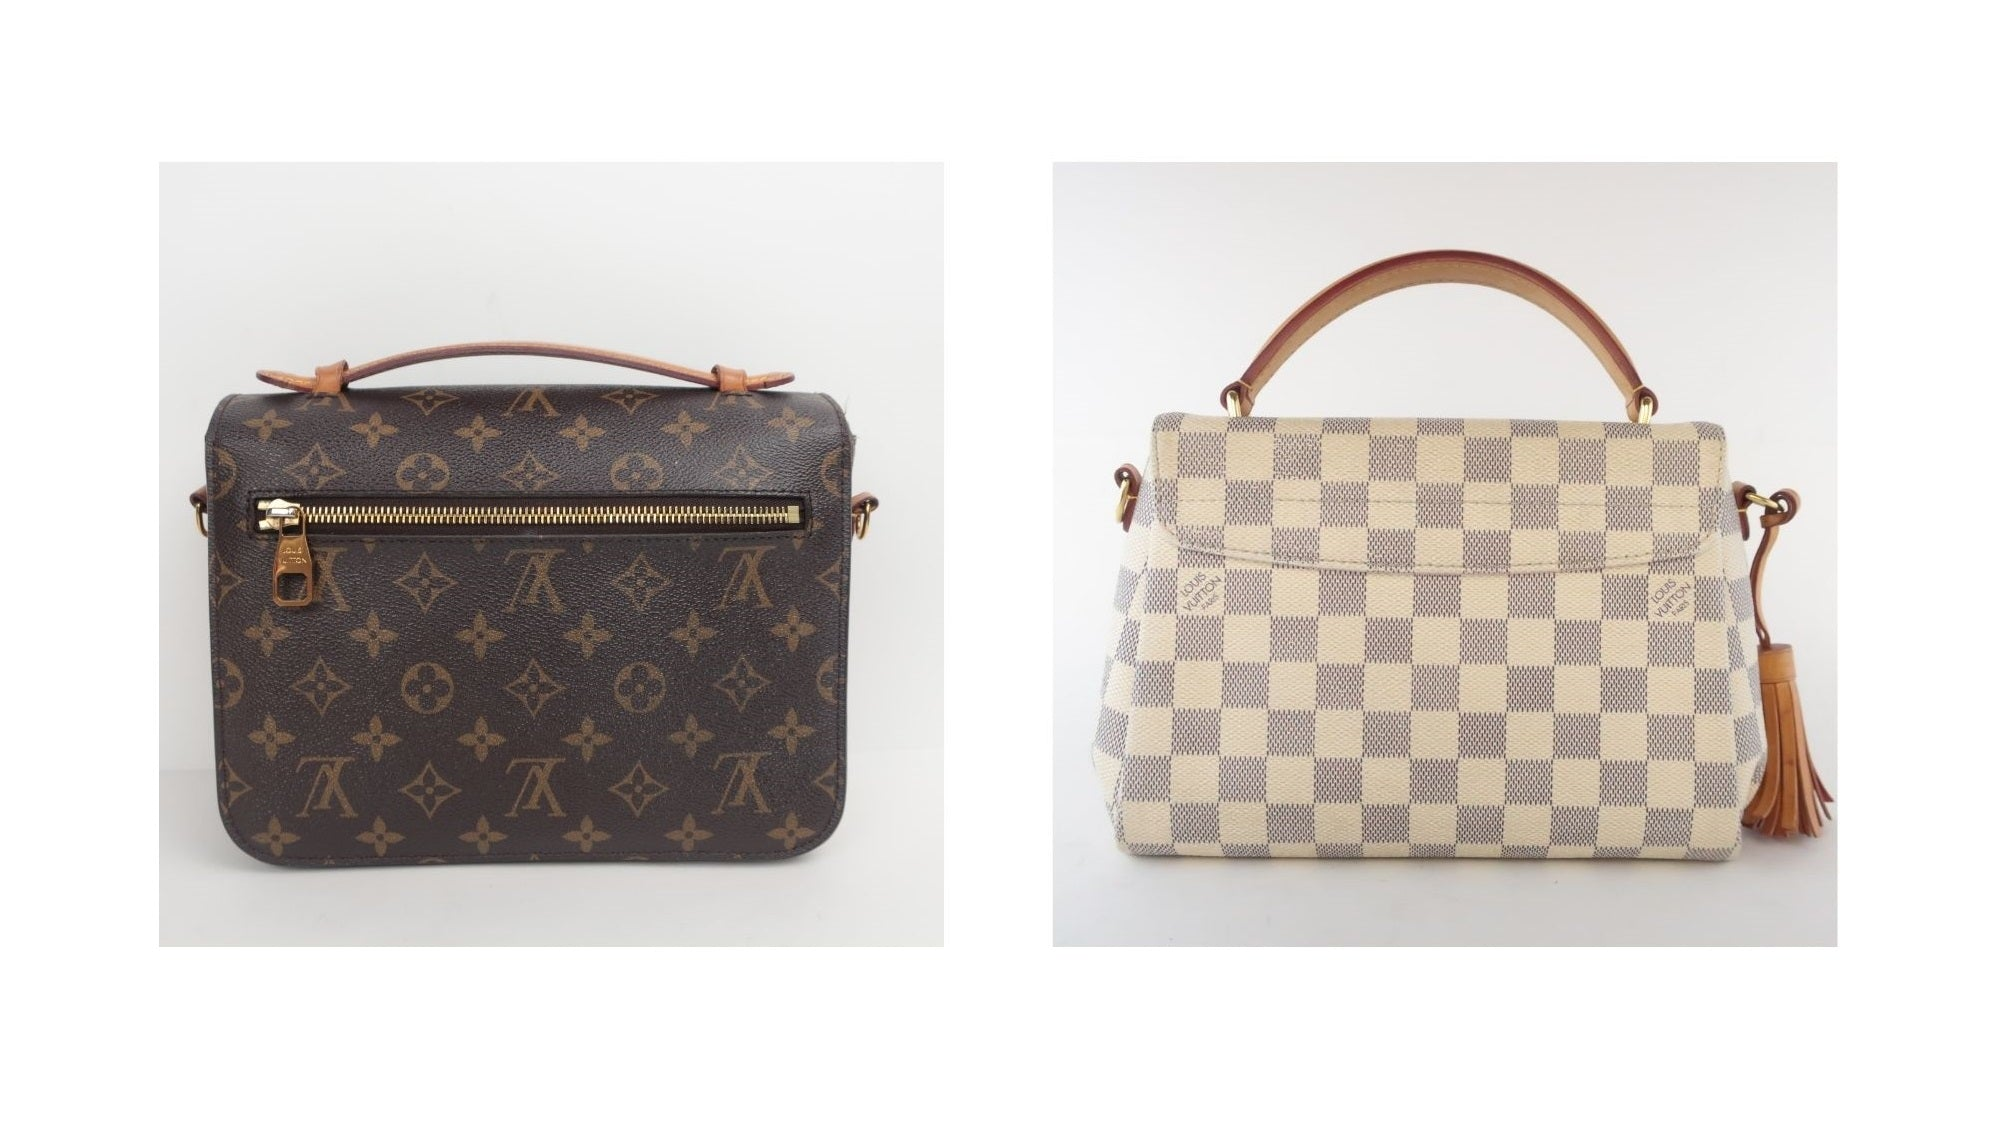 Louis Vuitton Croisette Bag Review and Real vs Fake Comparison (With Real Photos) louis vuitton croisette vs louis vuitton pochette metis